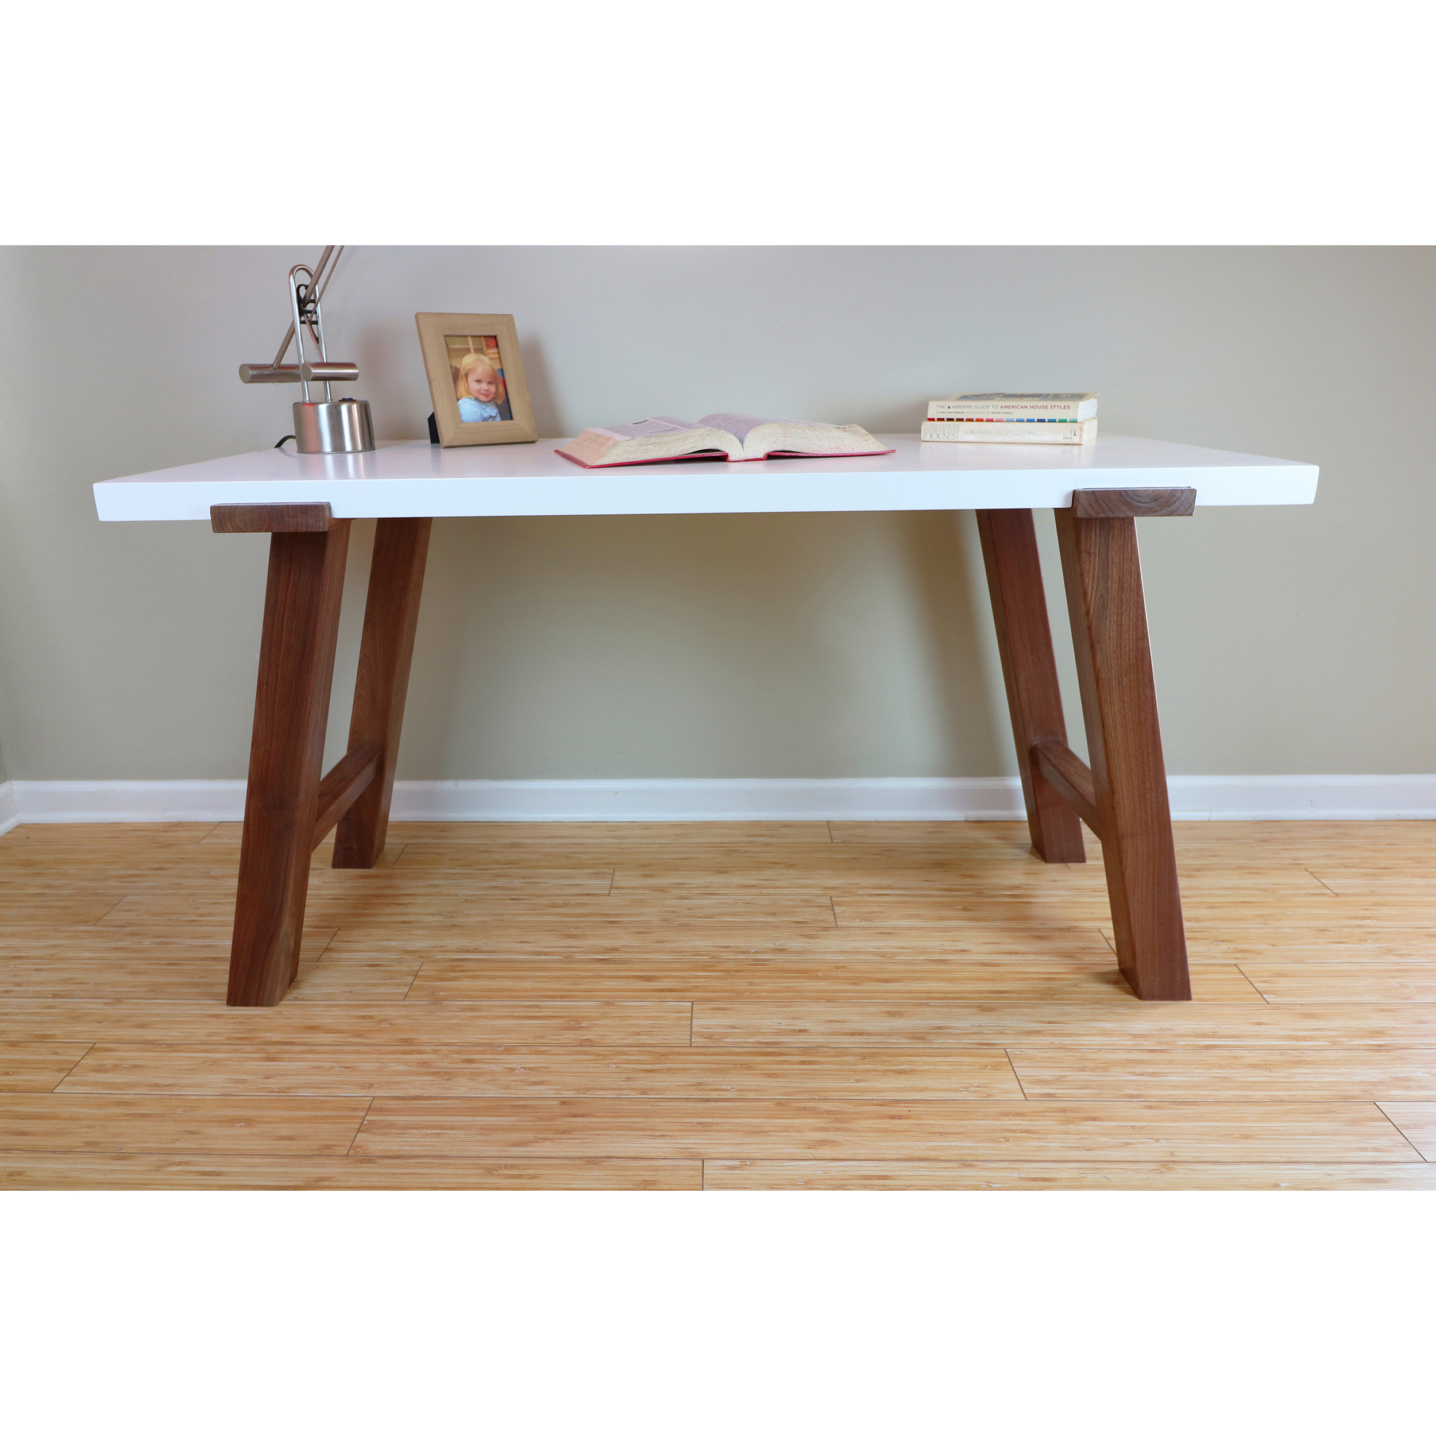 Contemporary desk with a maple white top